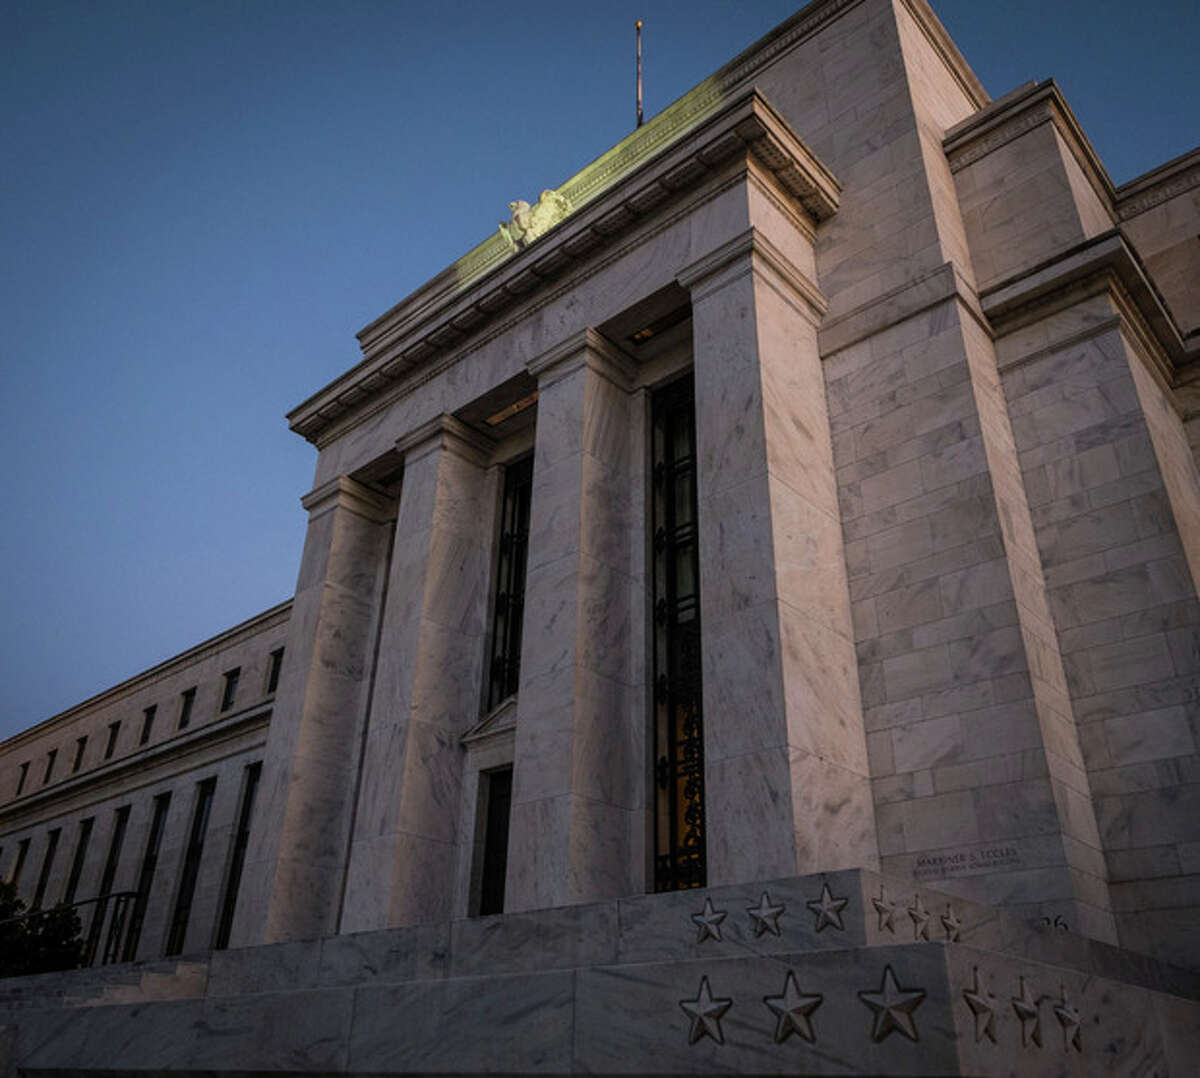 The Federal Reserve headquarters stands in Washington on Wednesday, Sept. 18, 2013. During its policy meeting on Wednesday, the Federal Reserve is expected to take its first step toward slowing the economic stimulus it's supplied since the financial crisis and the Great Recession five years ago. (AP Photo/J. David Ake)